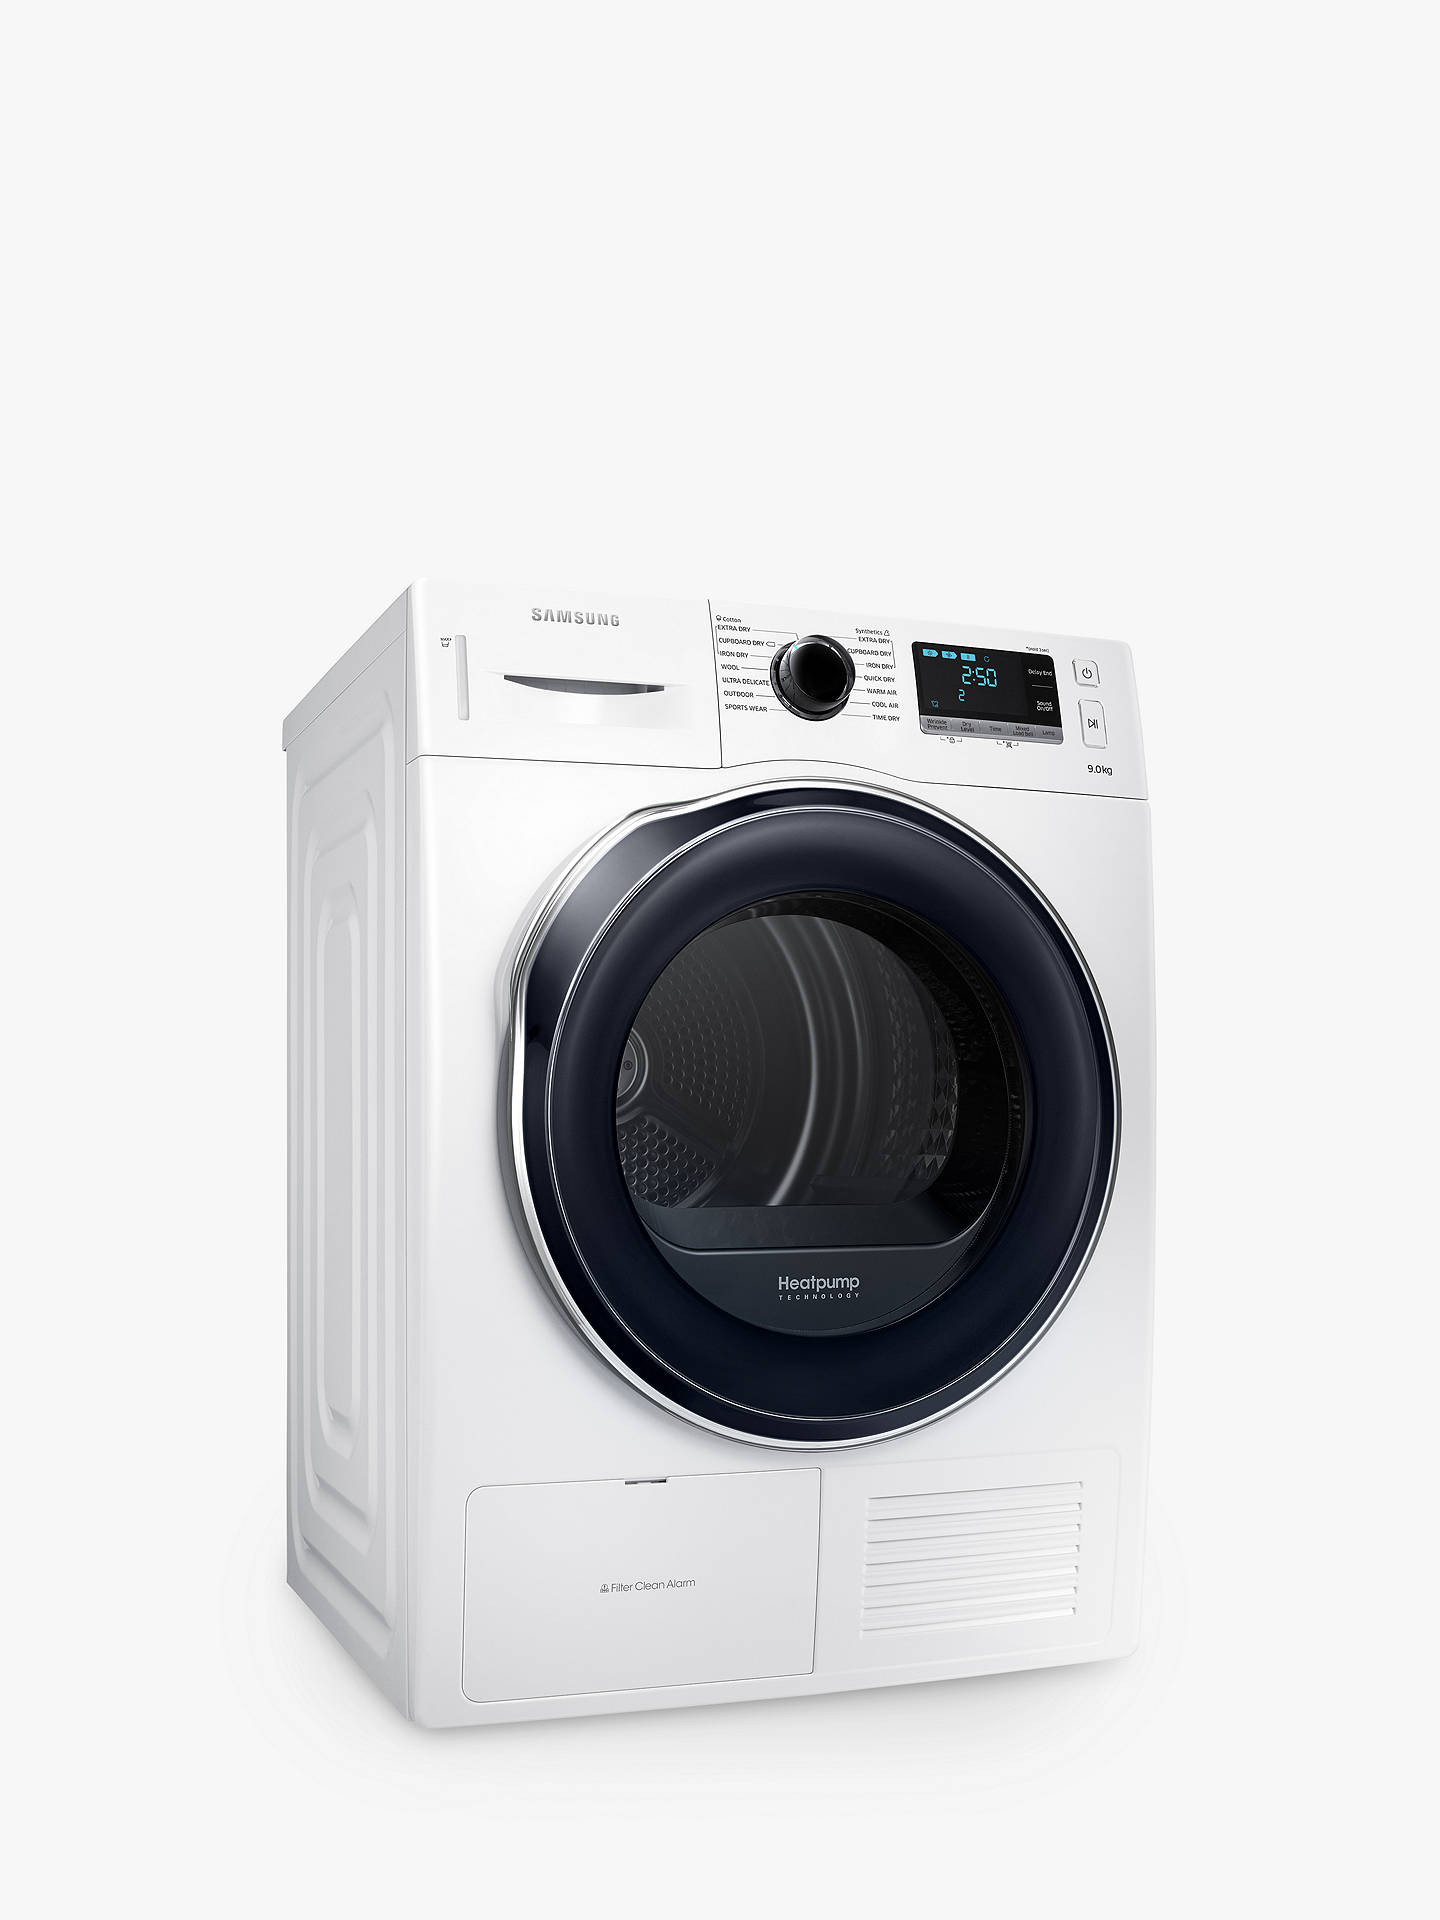 BuySamsung DV90K6000CW/EU Heat Pump Tumble Dryer, 9kg Load, A++ Energy Rating, White Online at johnlewis.com